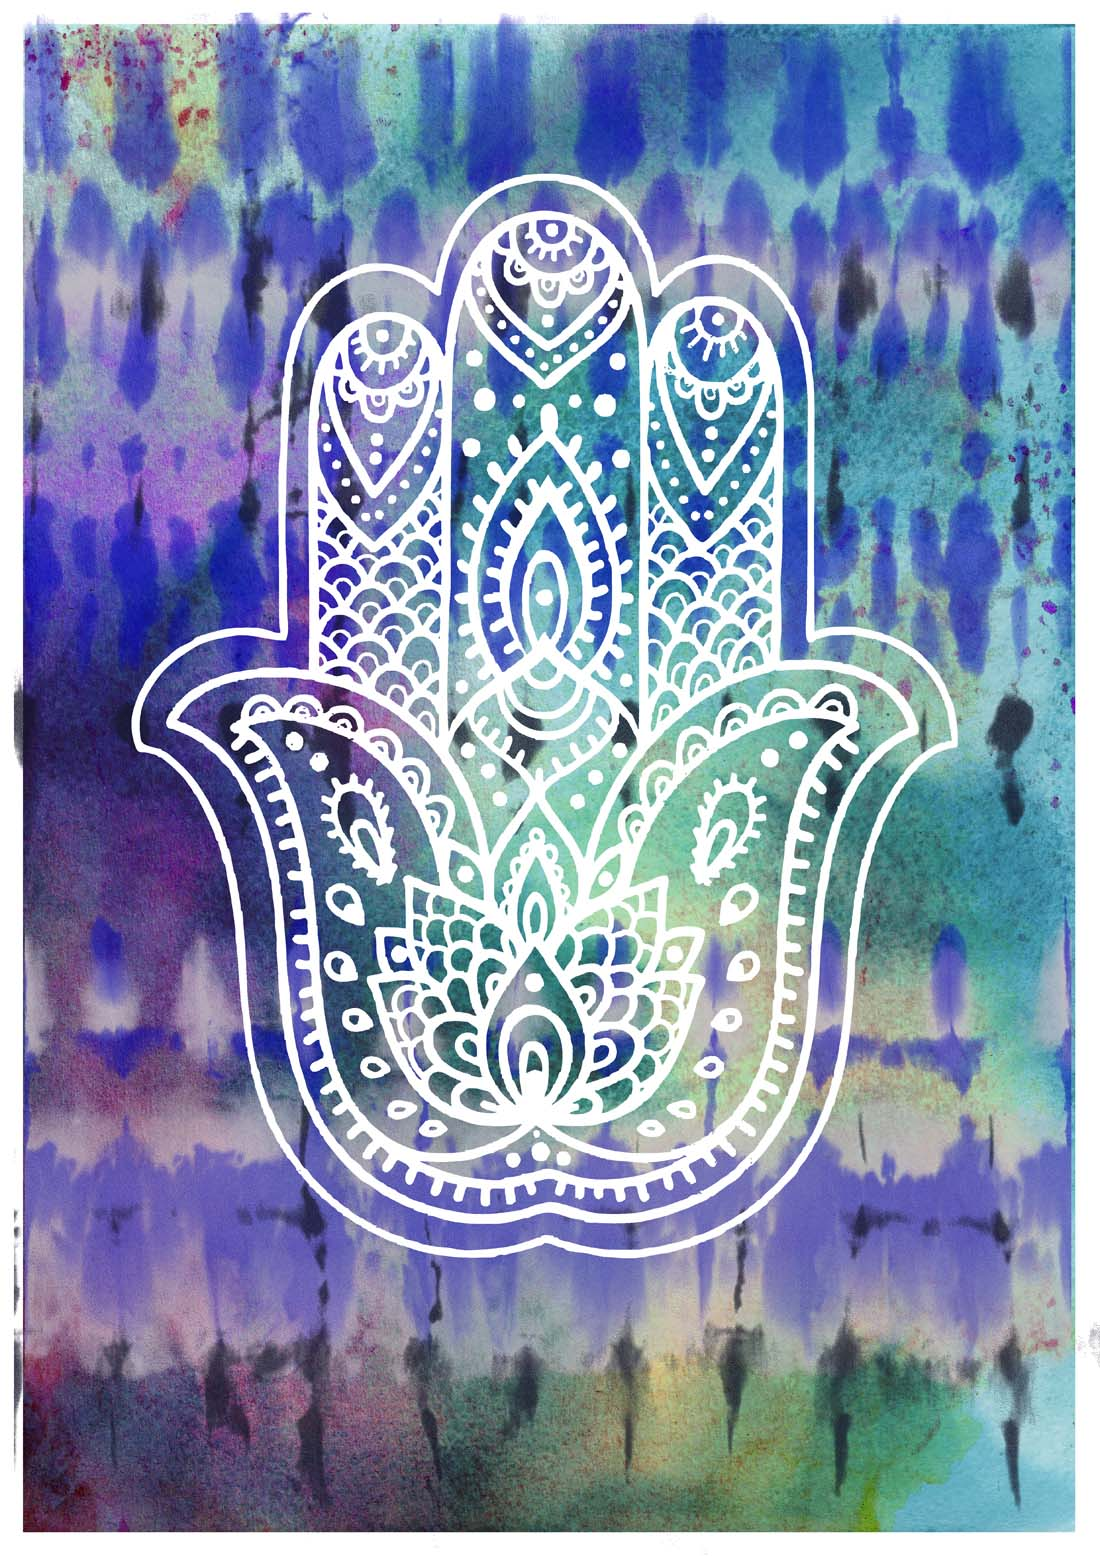 Hamsa-Hand-hippie-style-Wall-art-dorm-decor-poster-print-Karma-religious…-wallpaper-wp5405512